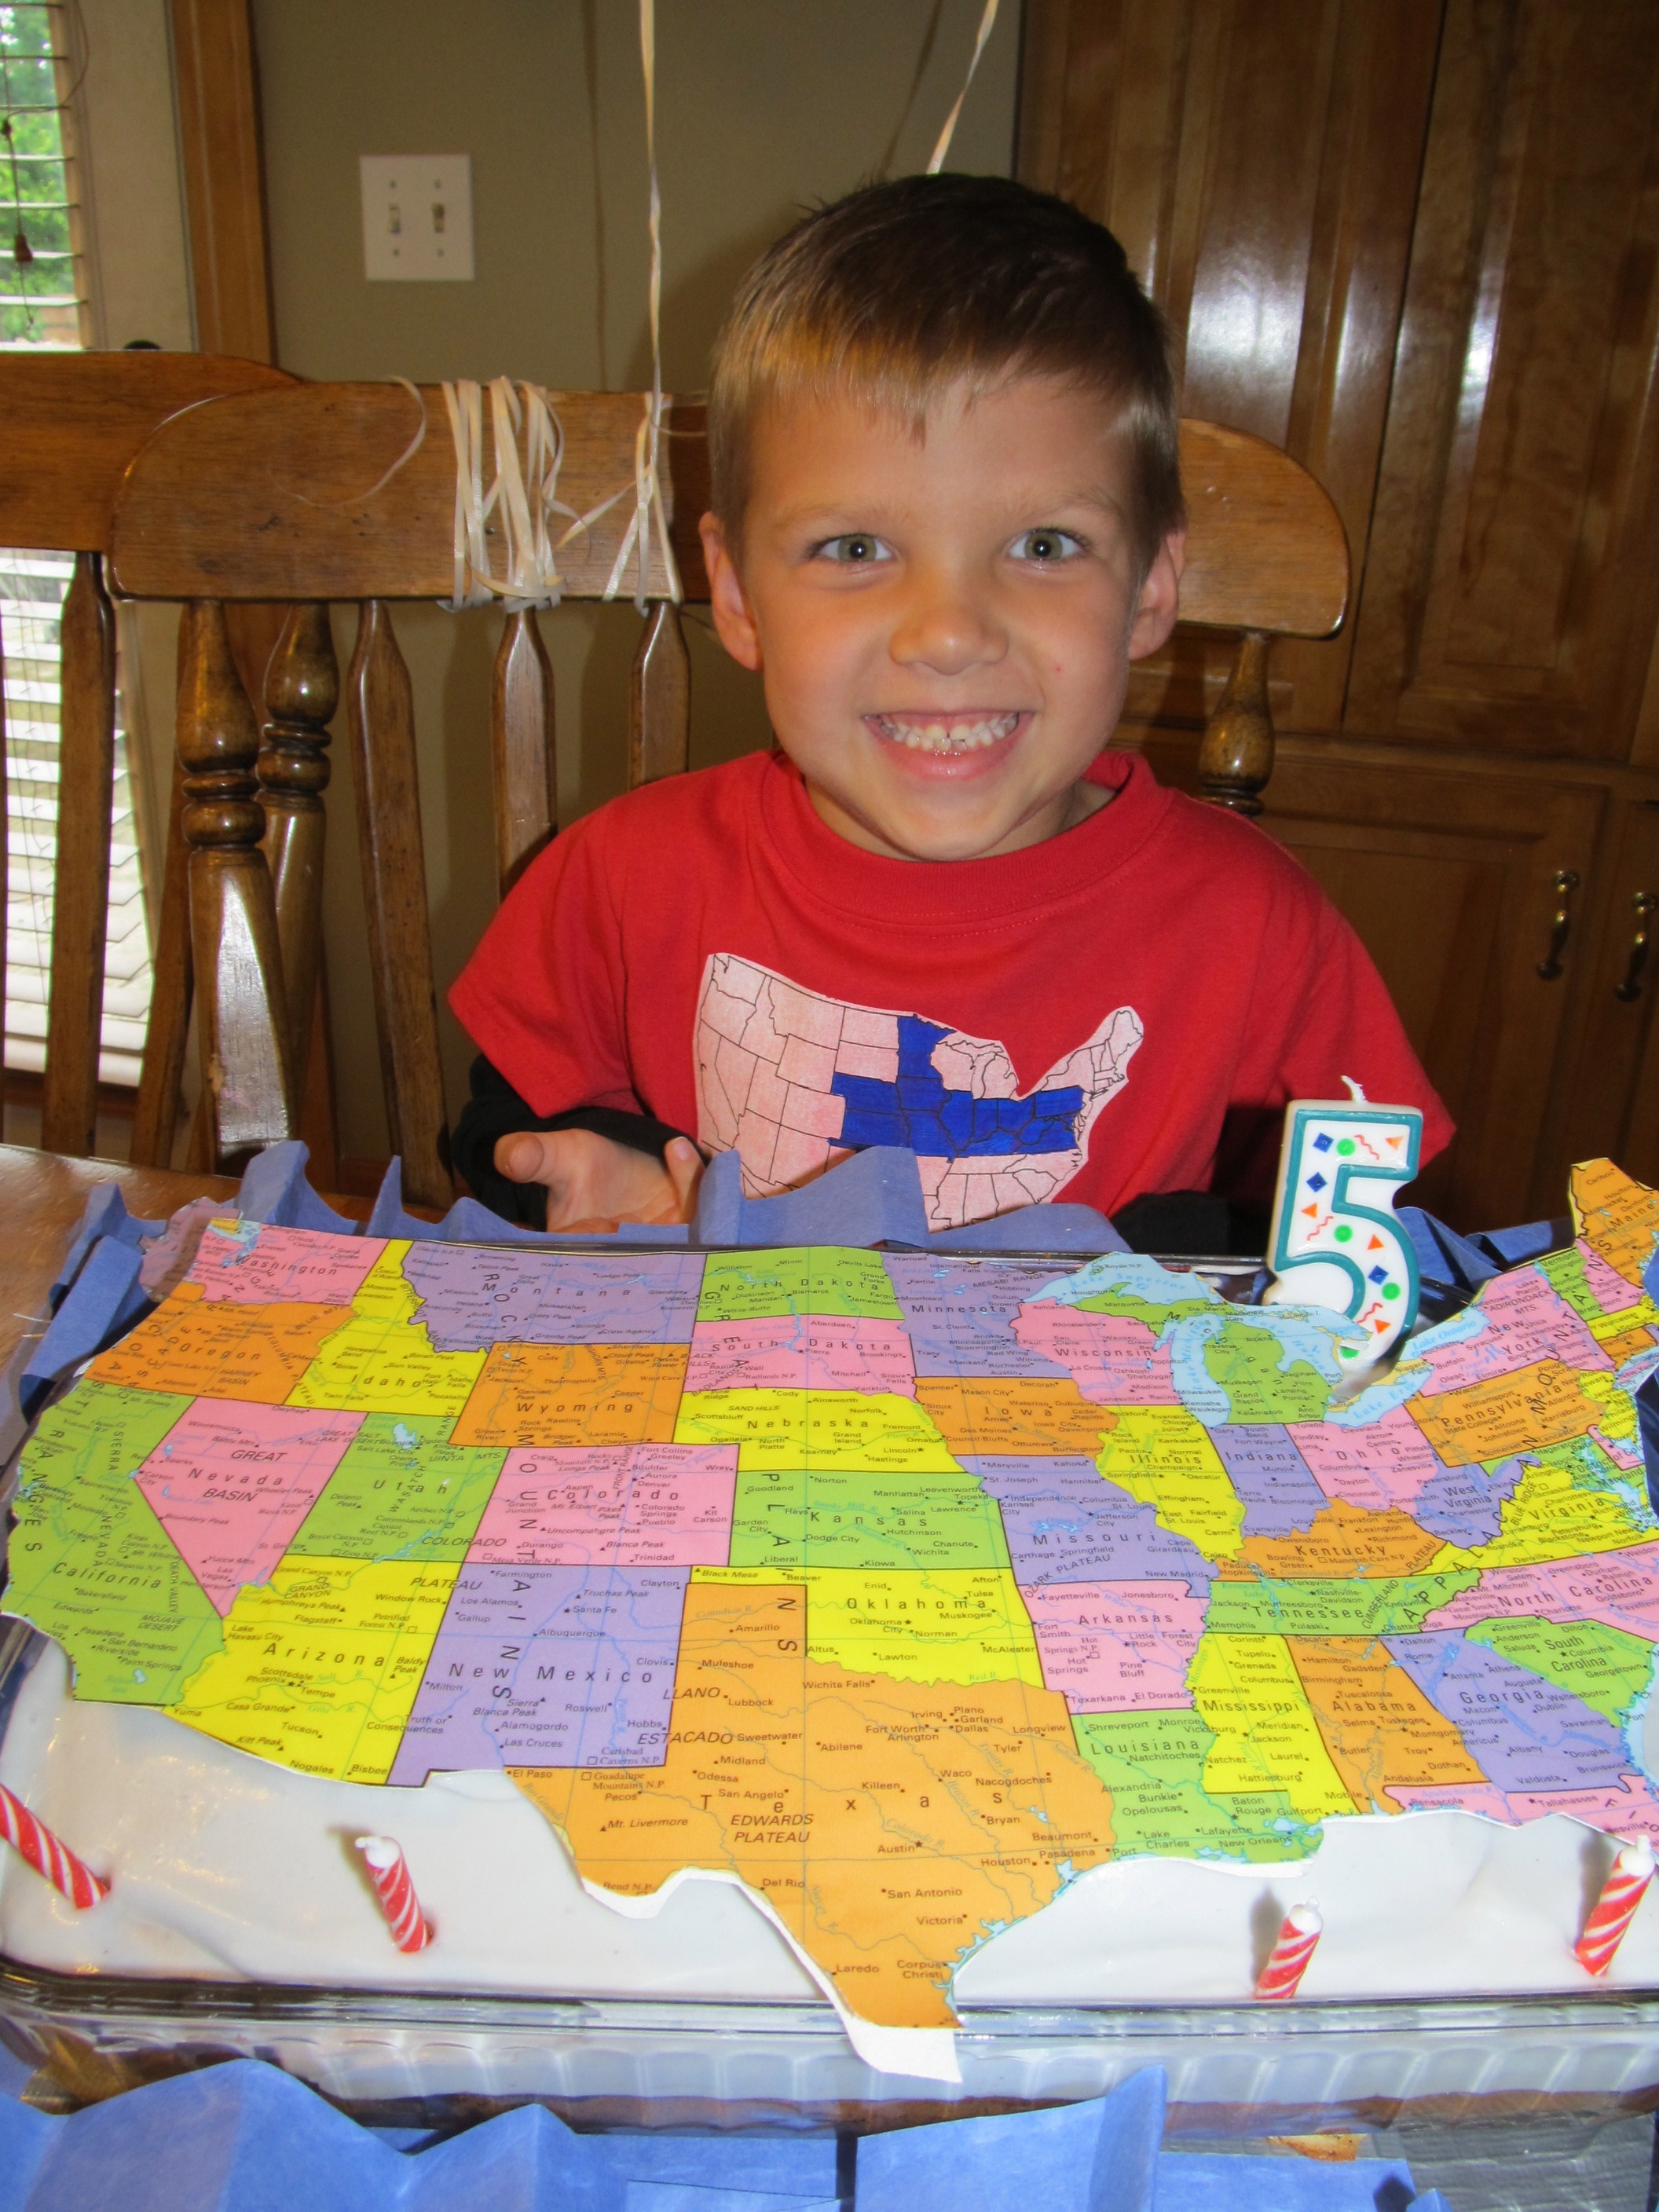 my apologies to canada and mexico you didn t make the cut for the cake but rest ured the kids know where you are on the map